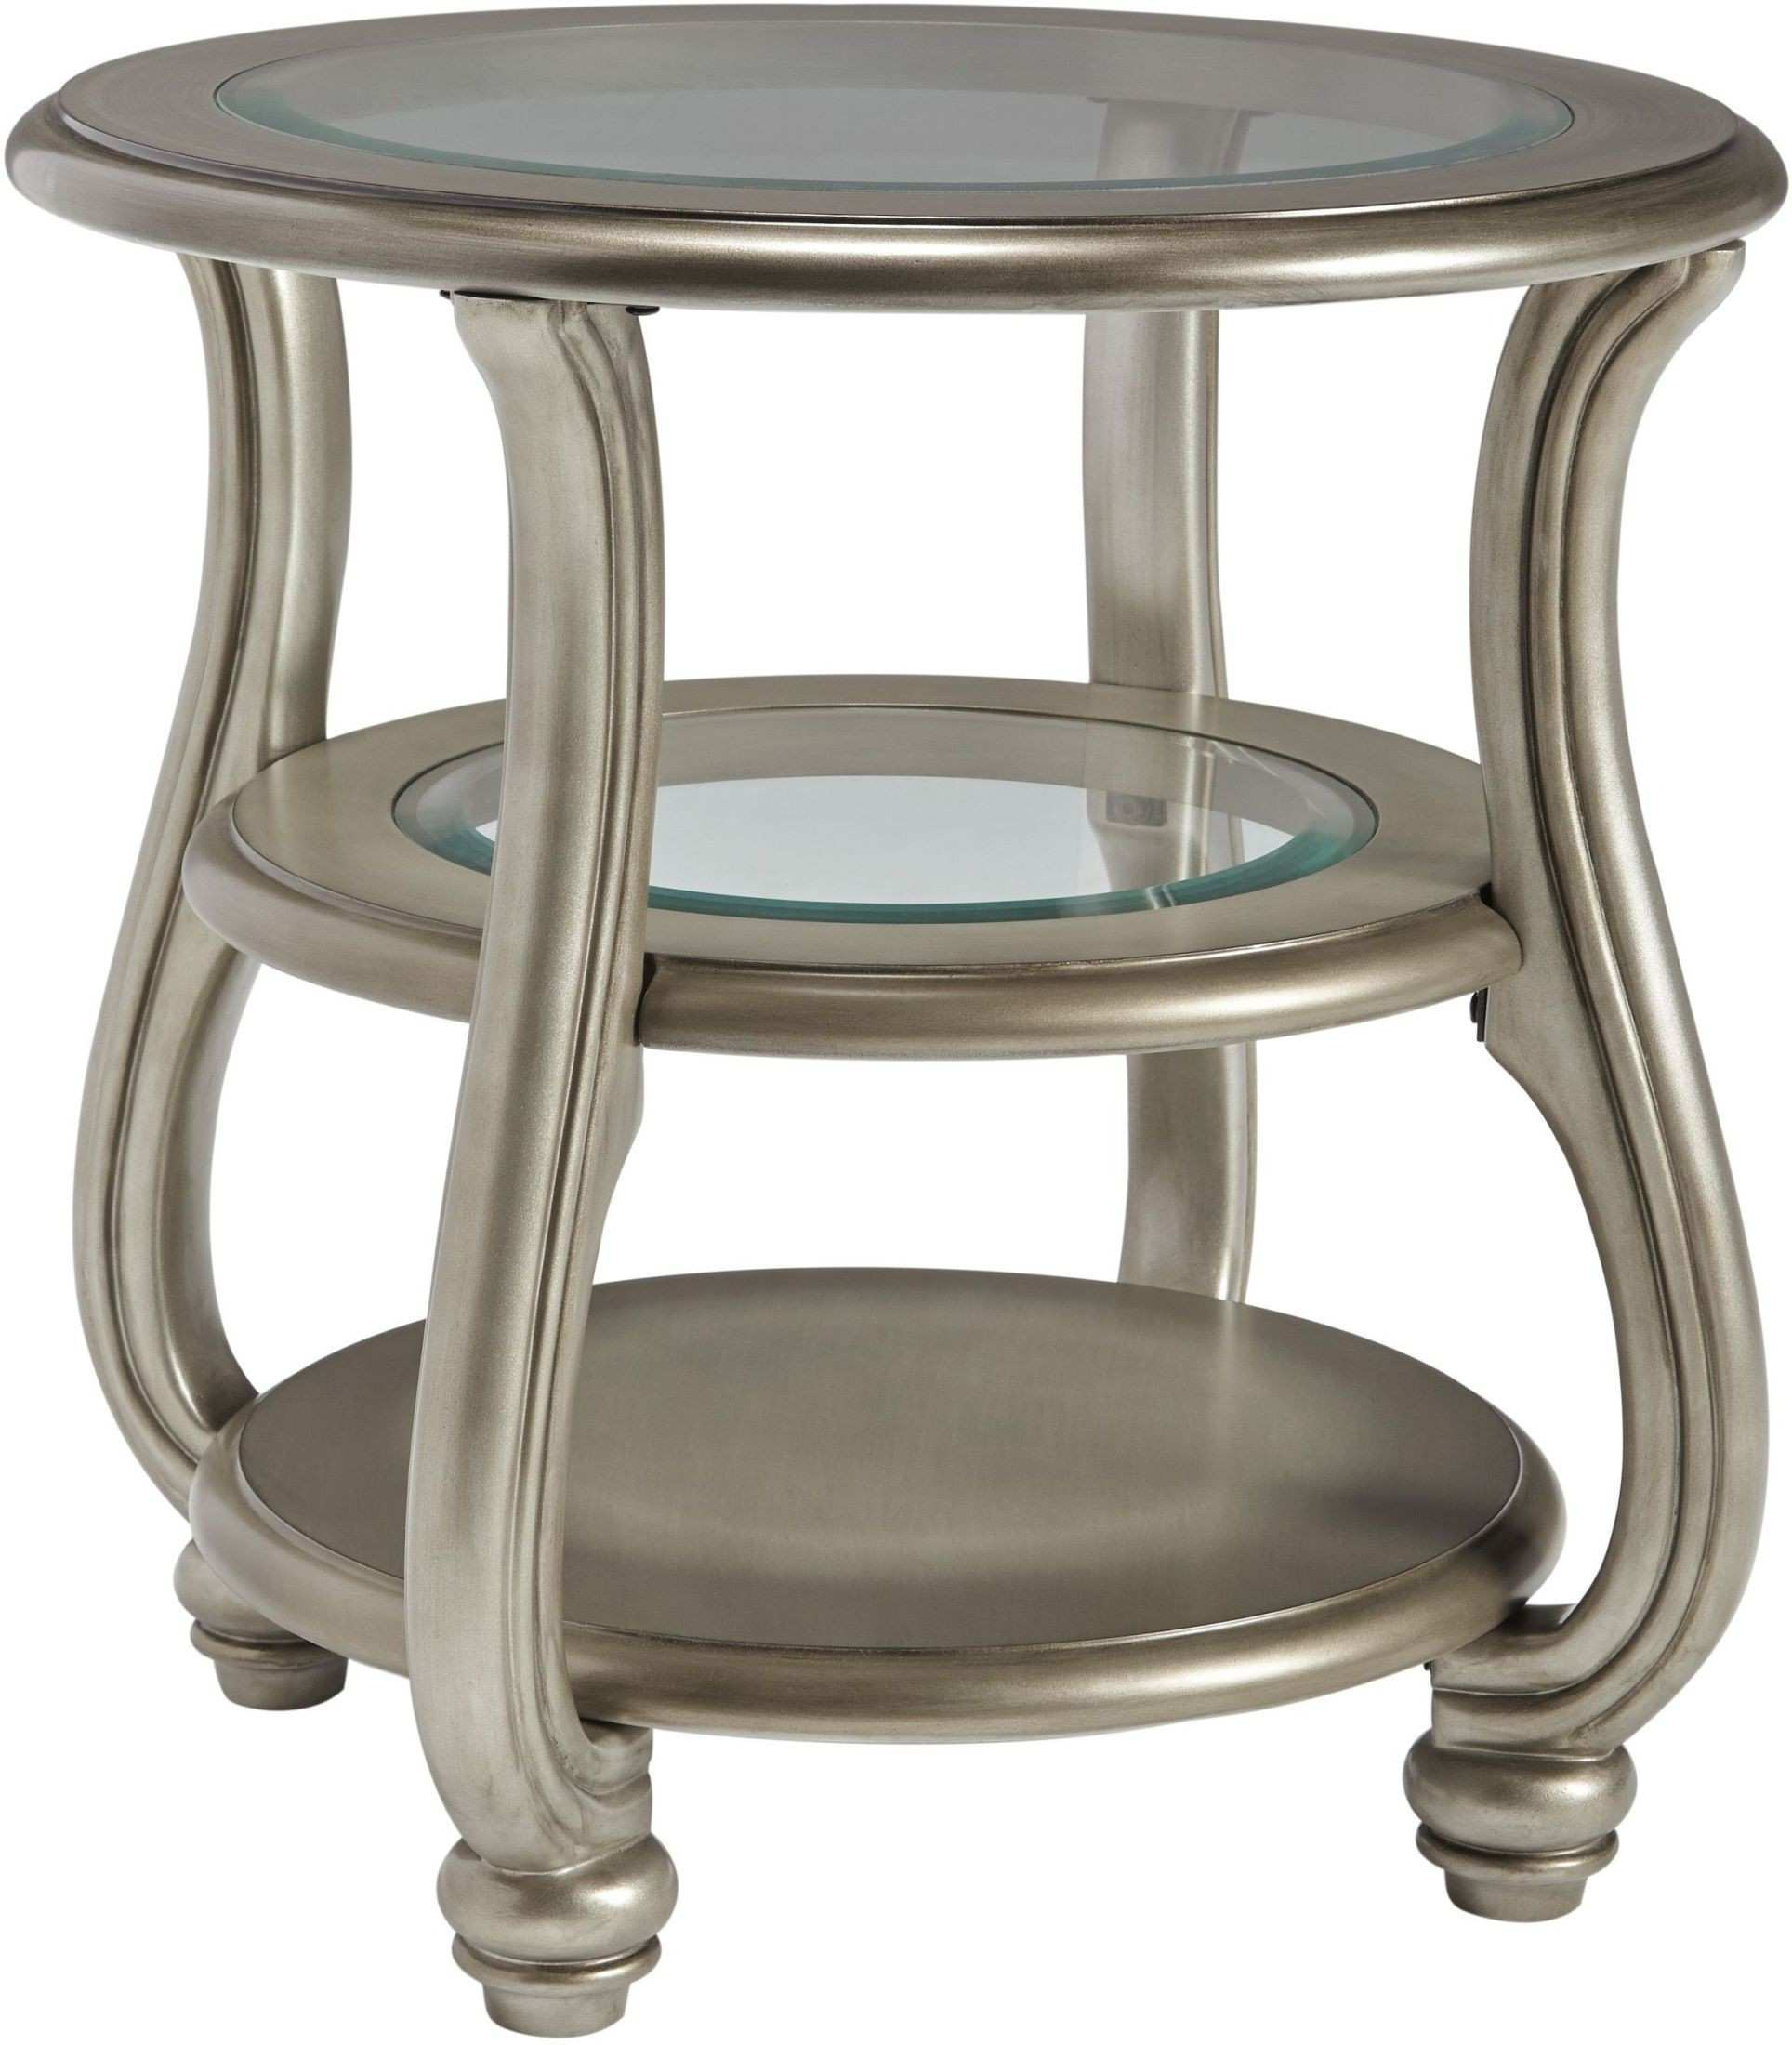 unique round silver accent table for steve gianna amazing coralayne end from ashley tall lamps living room area rugs house interior design ideas cherry side tables coffee decor